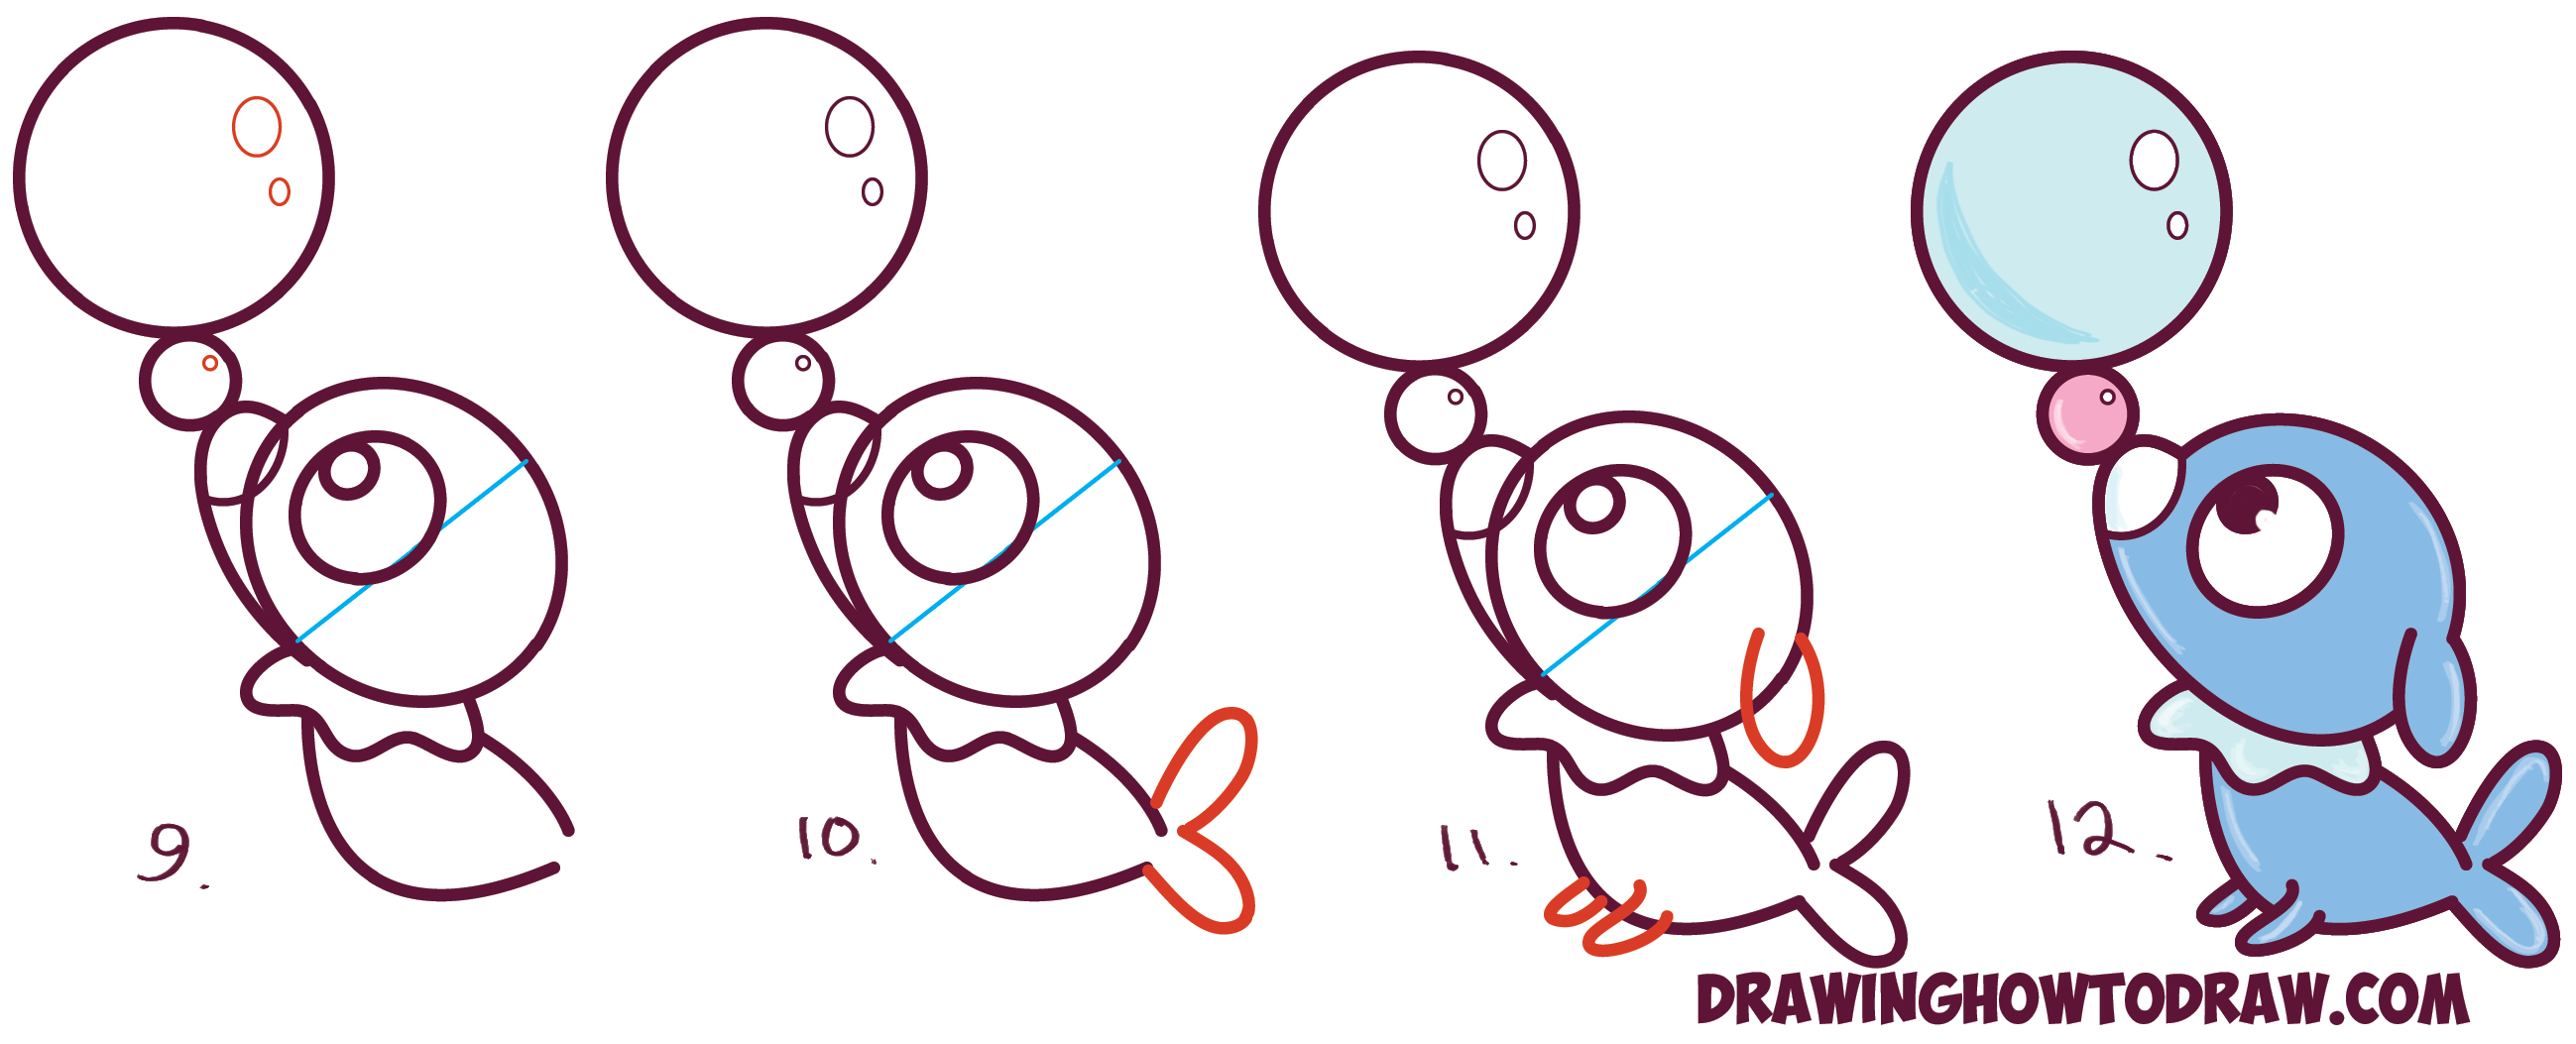 How To Draw Cute Kawaii Chibi Popplio From Pokemon Sun And Moon In